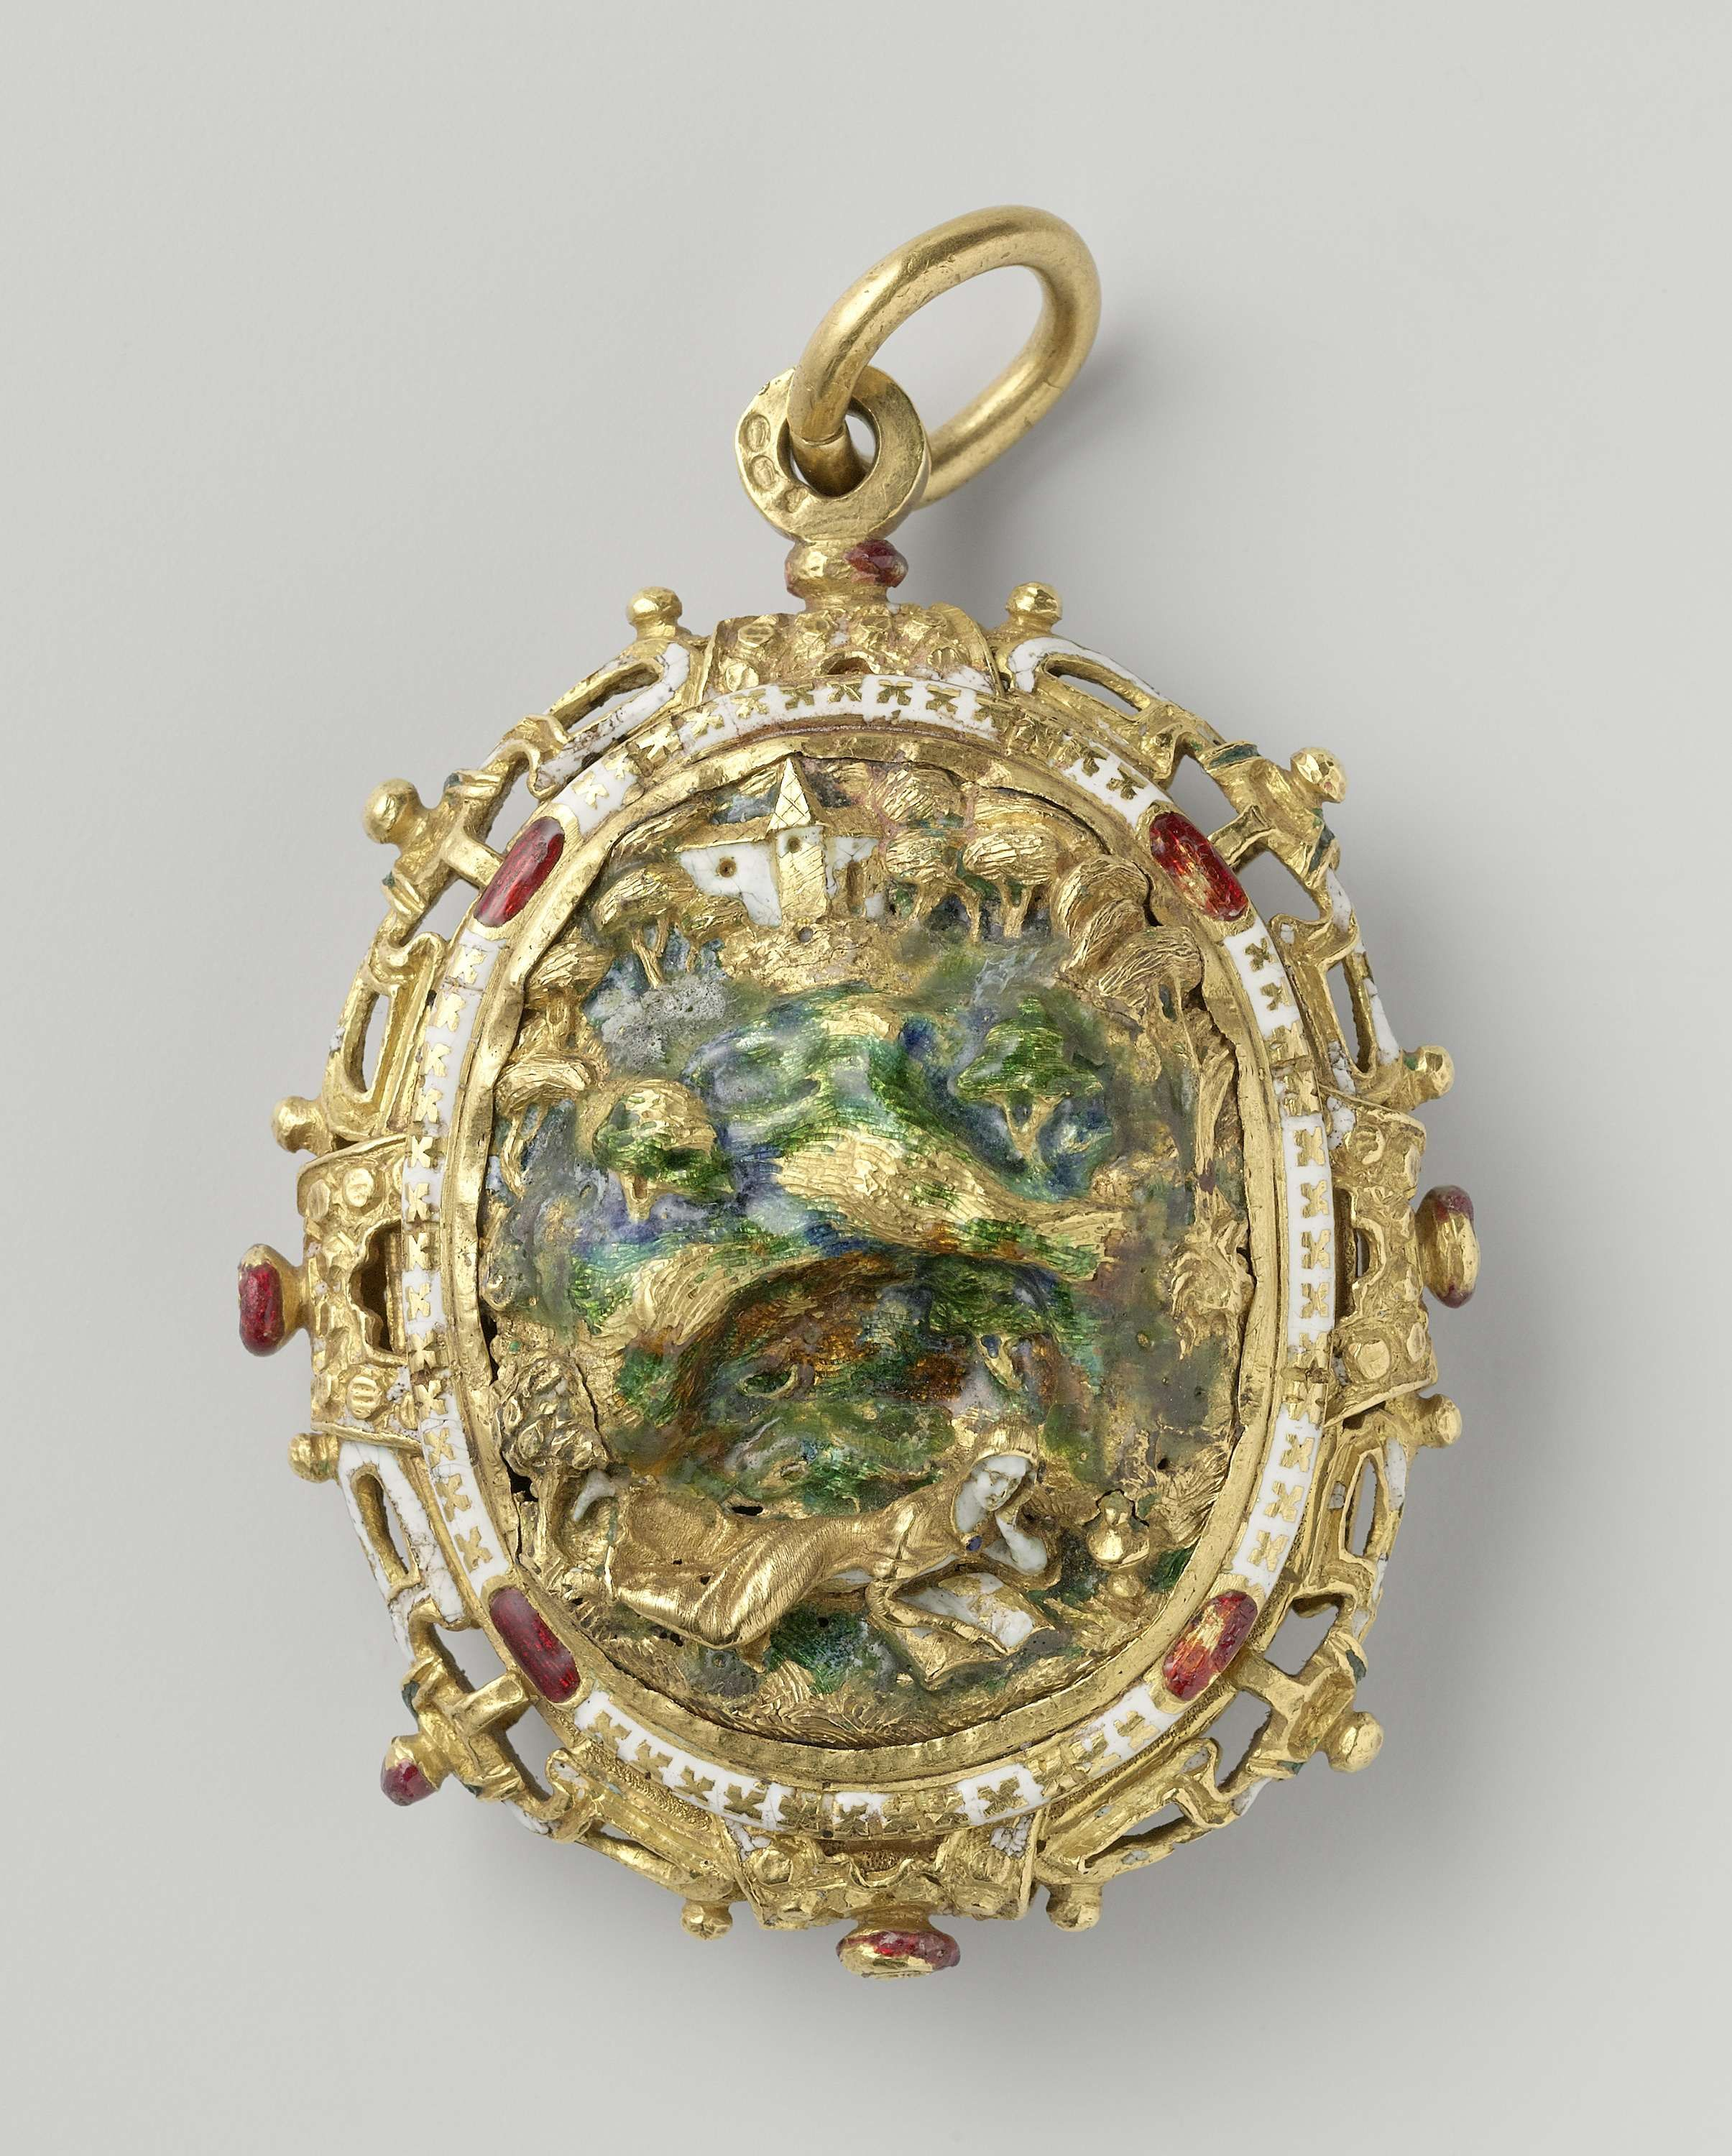 Pendant of gold and enamel with the lost income mary magdalene in pendant of gold and enamel with the lost income mary magdalene in the grotto mozeypictures Gallery